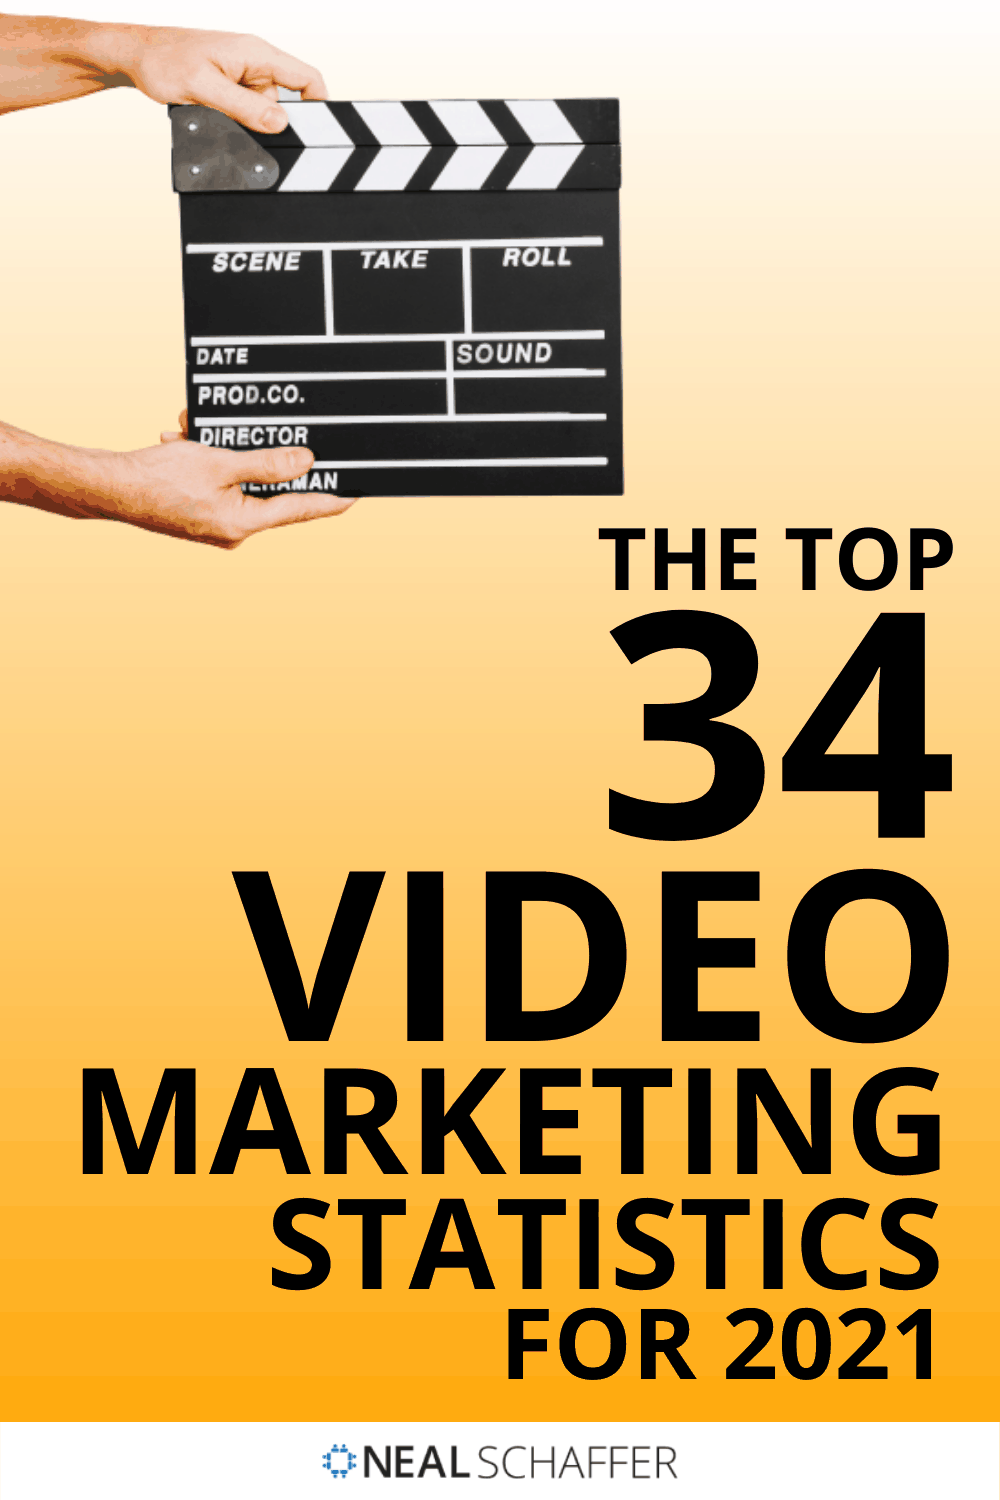 The top 34 video marketing statistics that you need to know to maximize your video marketing ROI in 2021, including stats on YouTube, Inst...